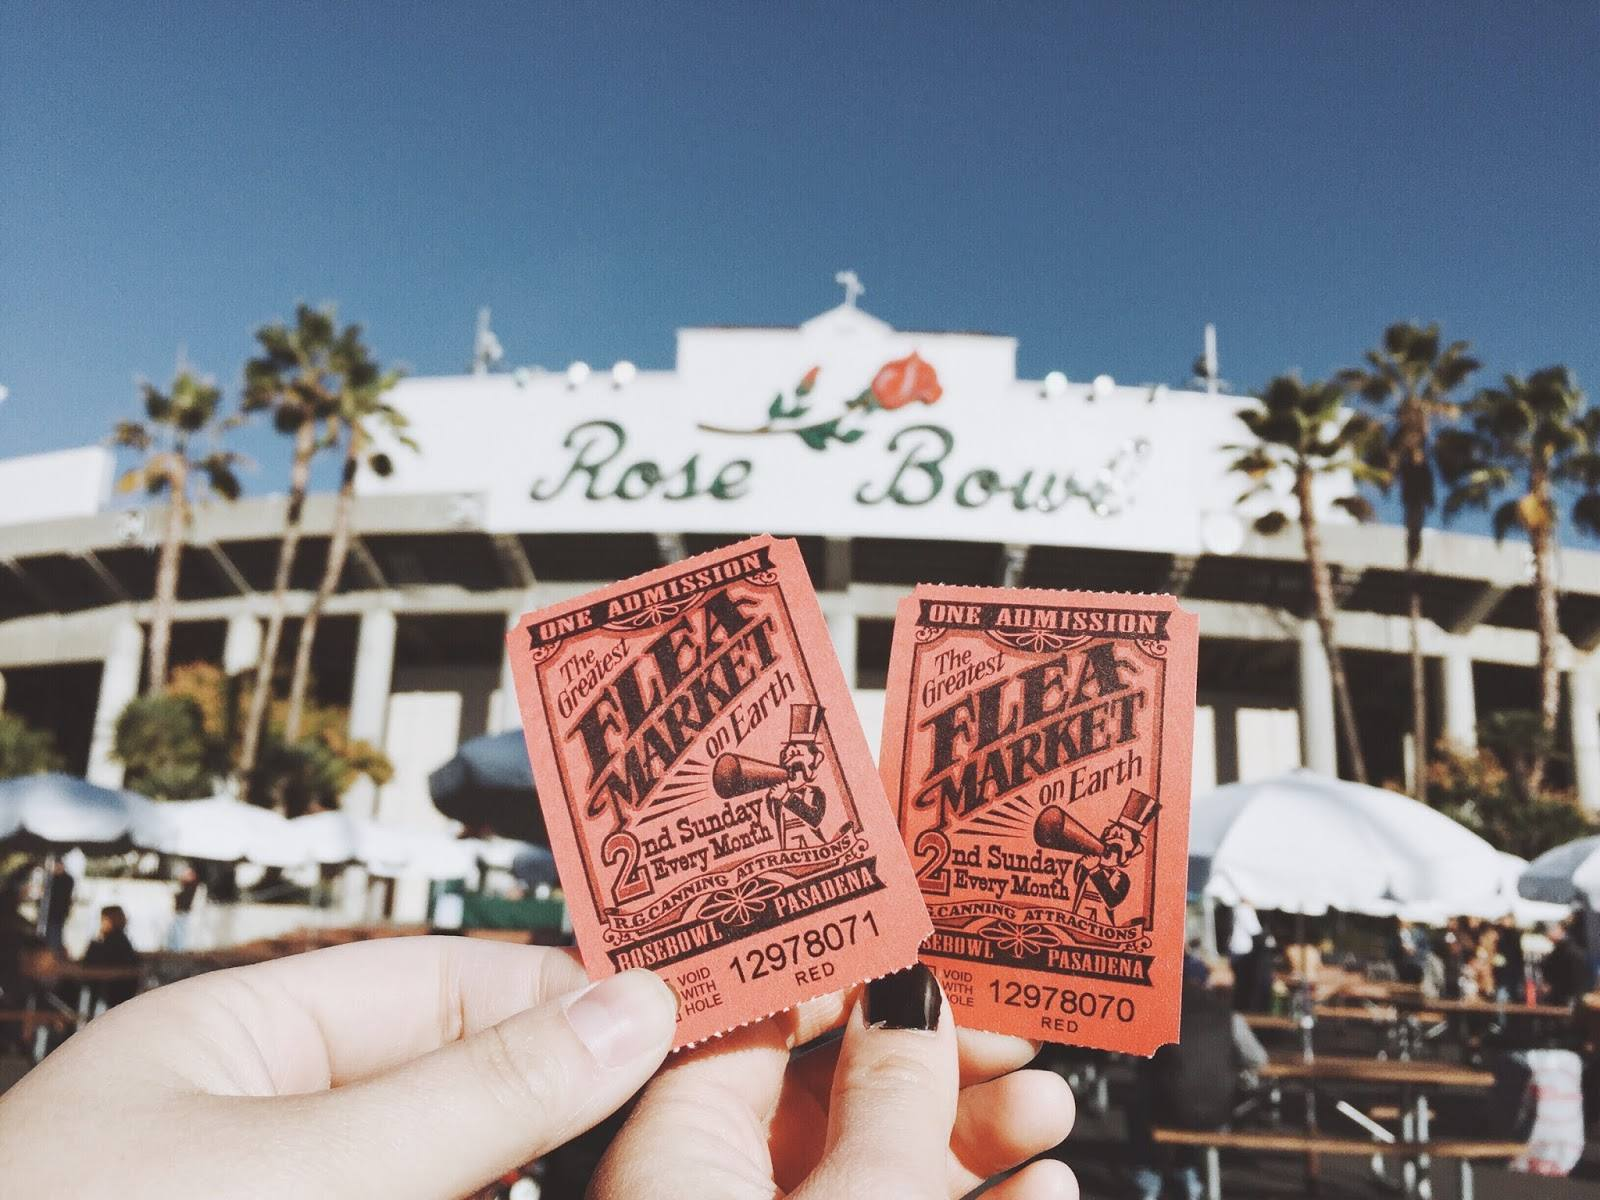 Rose Bowl Flea Market Tickets